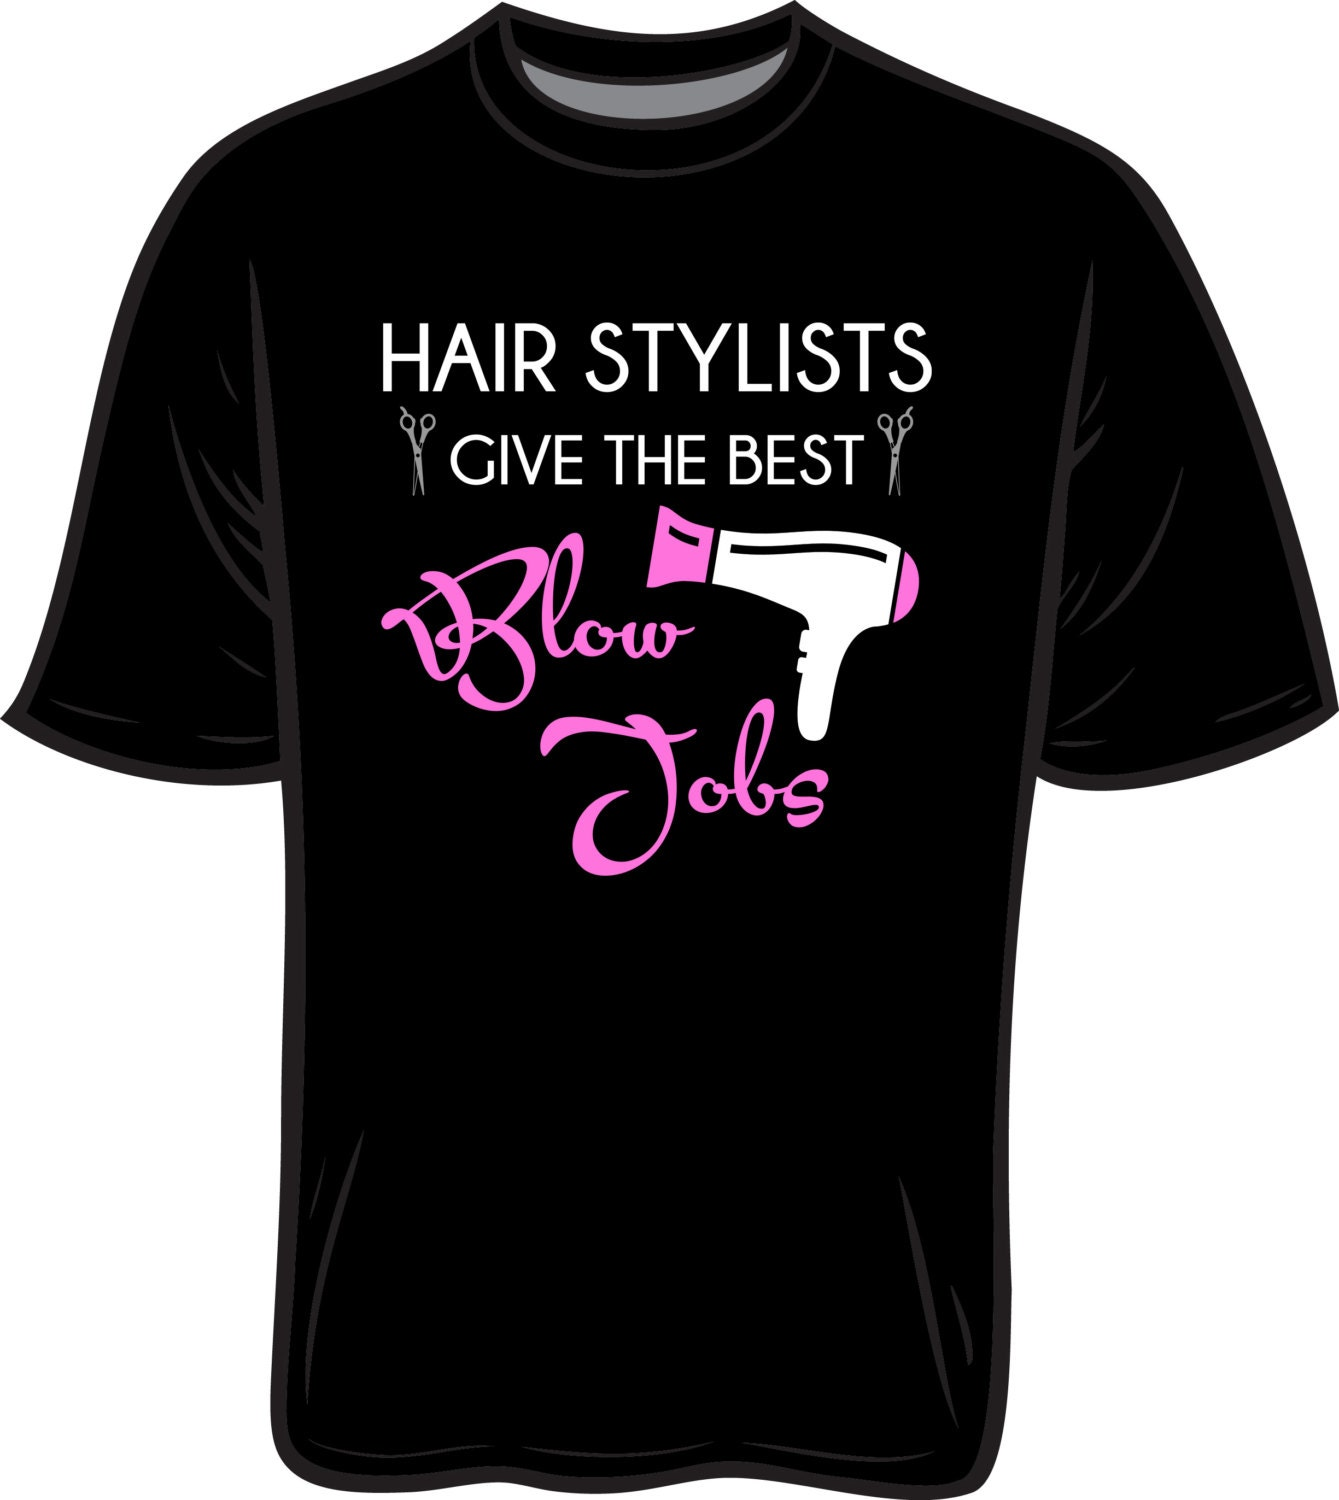 The Best Hair Stylist : Hair Stylists Give the Best Blow Jobs by SmoothCreationz on Etsy